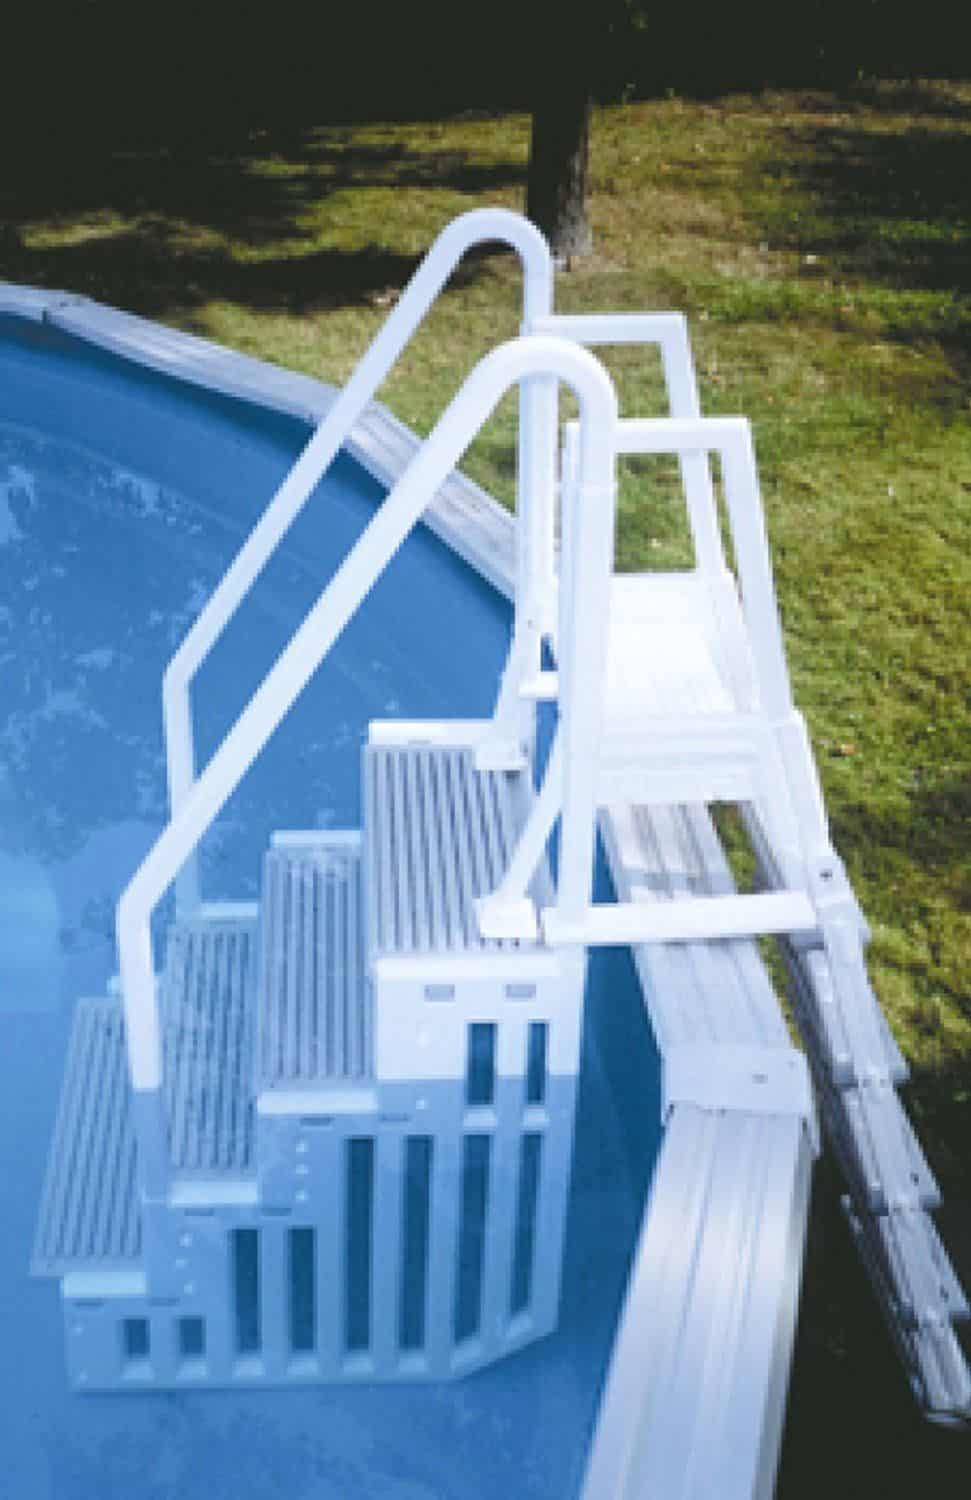 The best above ground pool ladders and steps home pools plus - Above ground pool steps for handicap ...